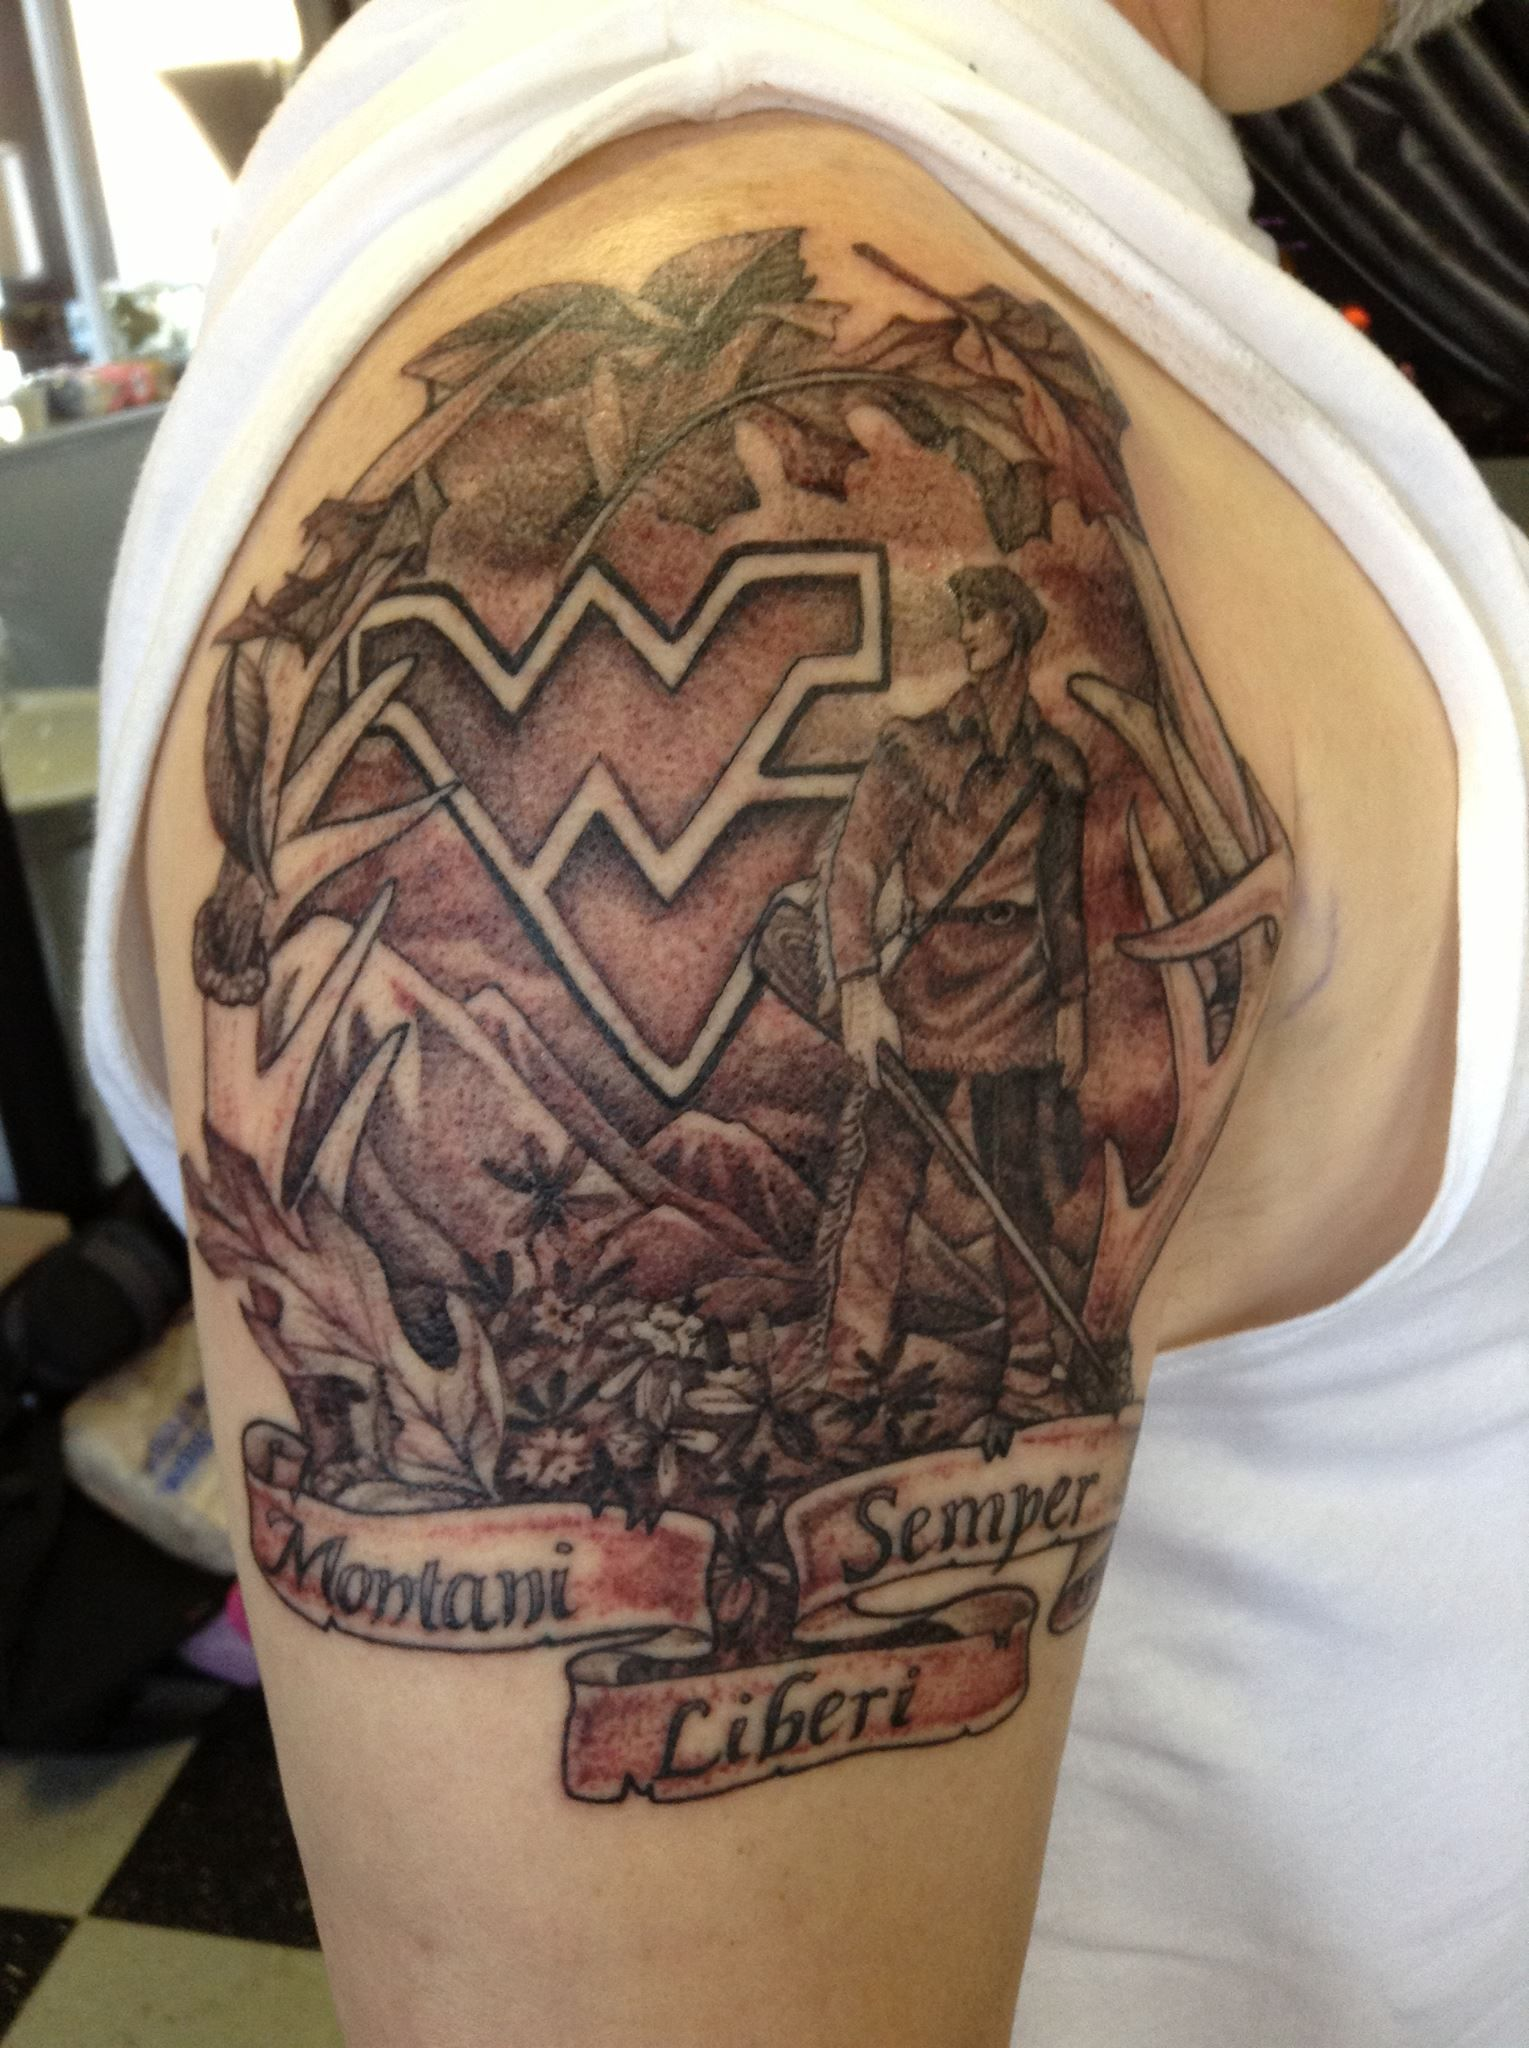 West Virginia Tattoo Ideas : virginia, tattoo, ideas, Patty's, Morgantown, Amazing, Work!, Virginia, Tattoo,, Antler, Tattoos,, Tattoos